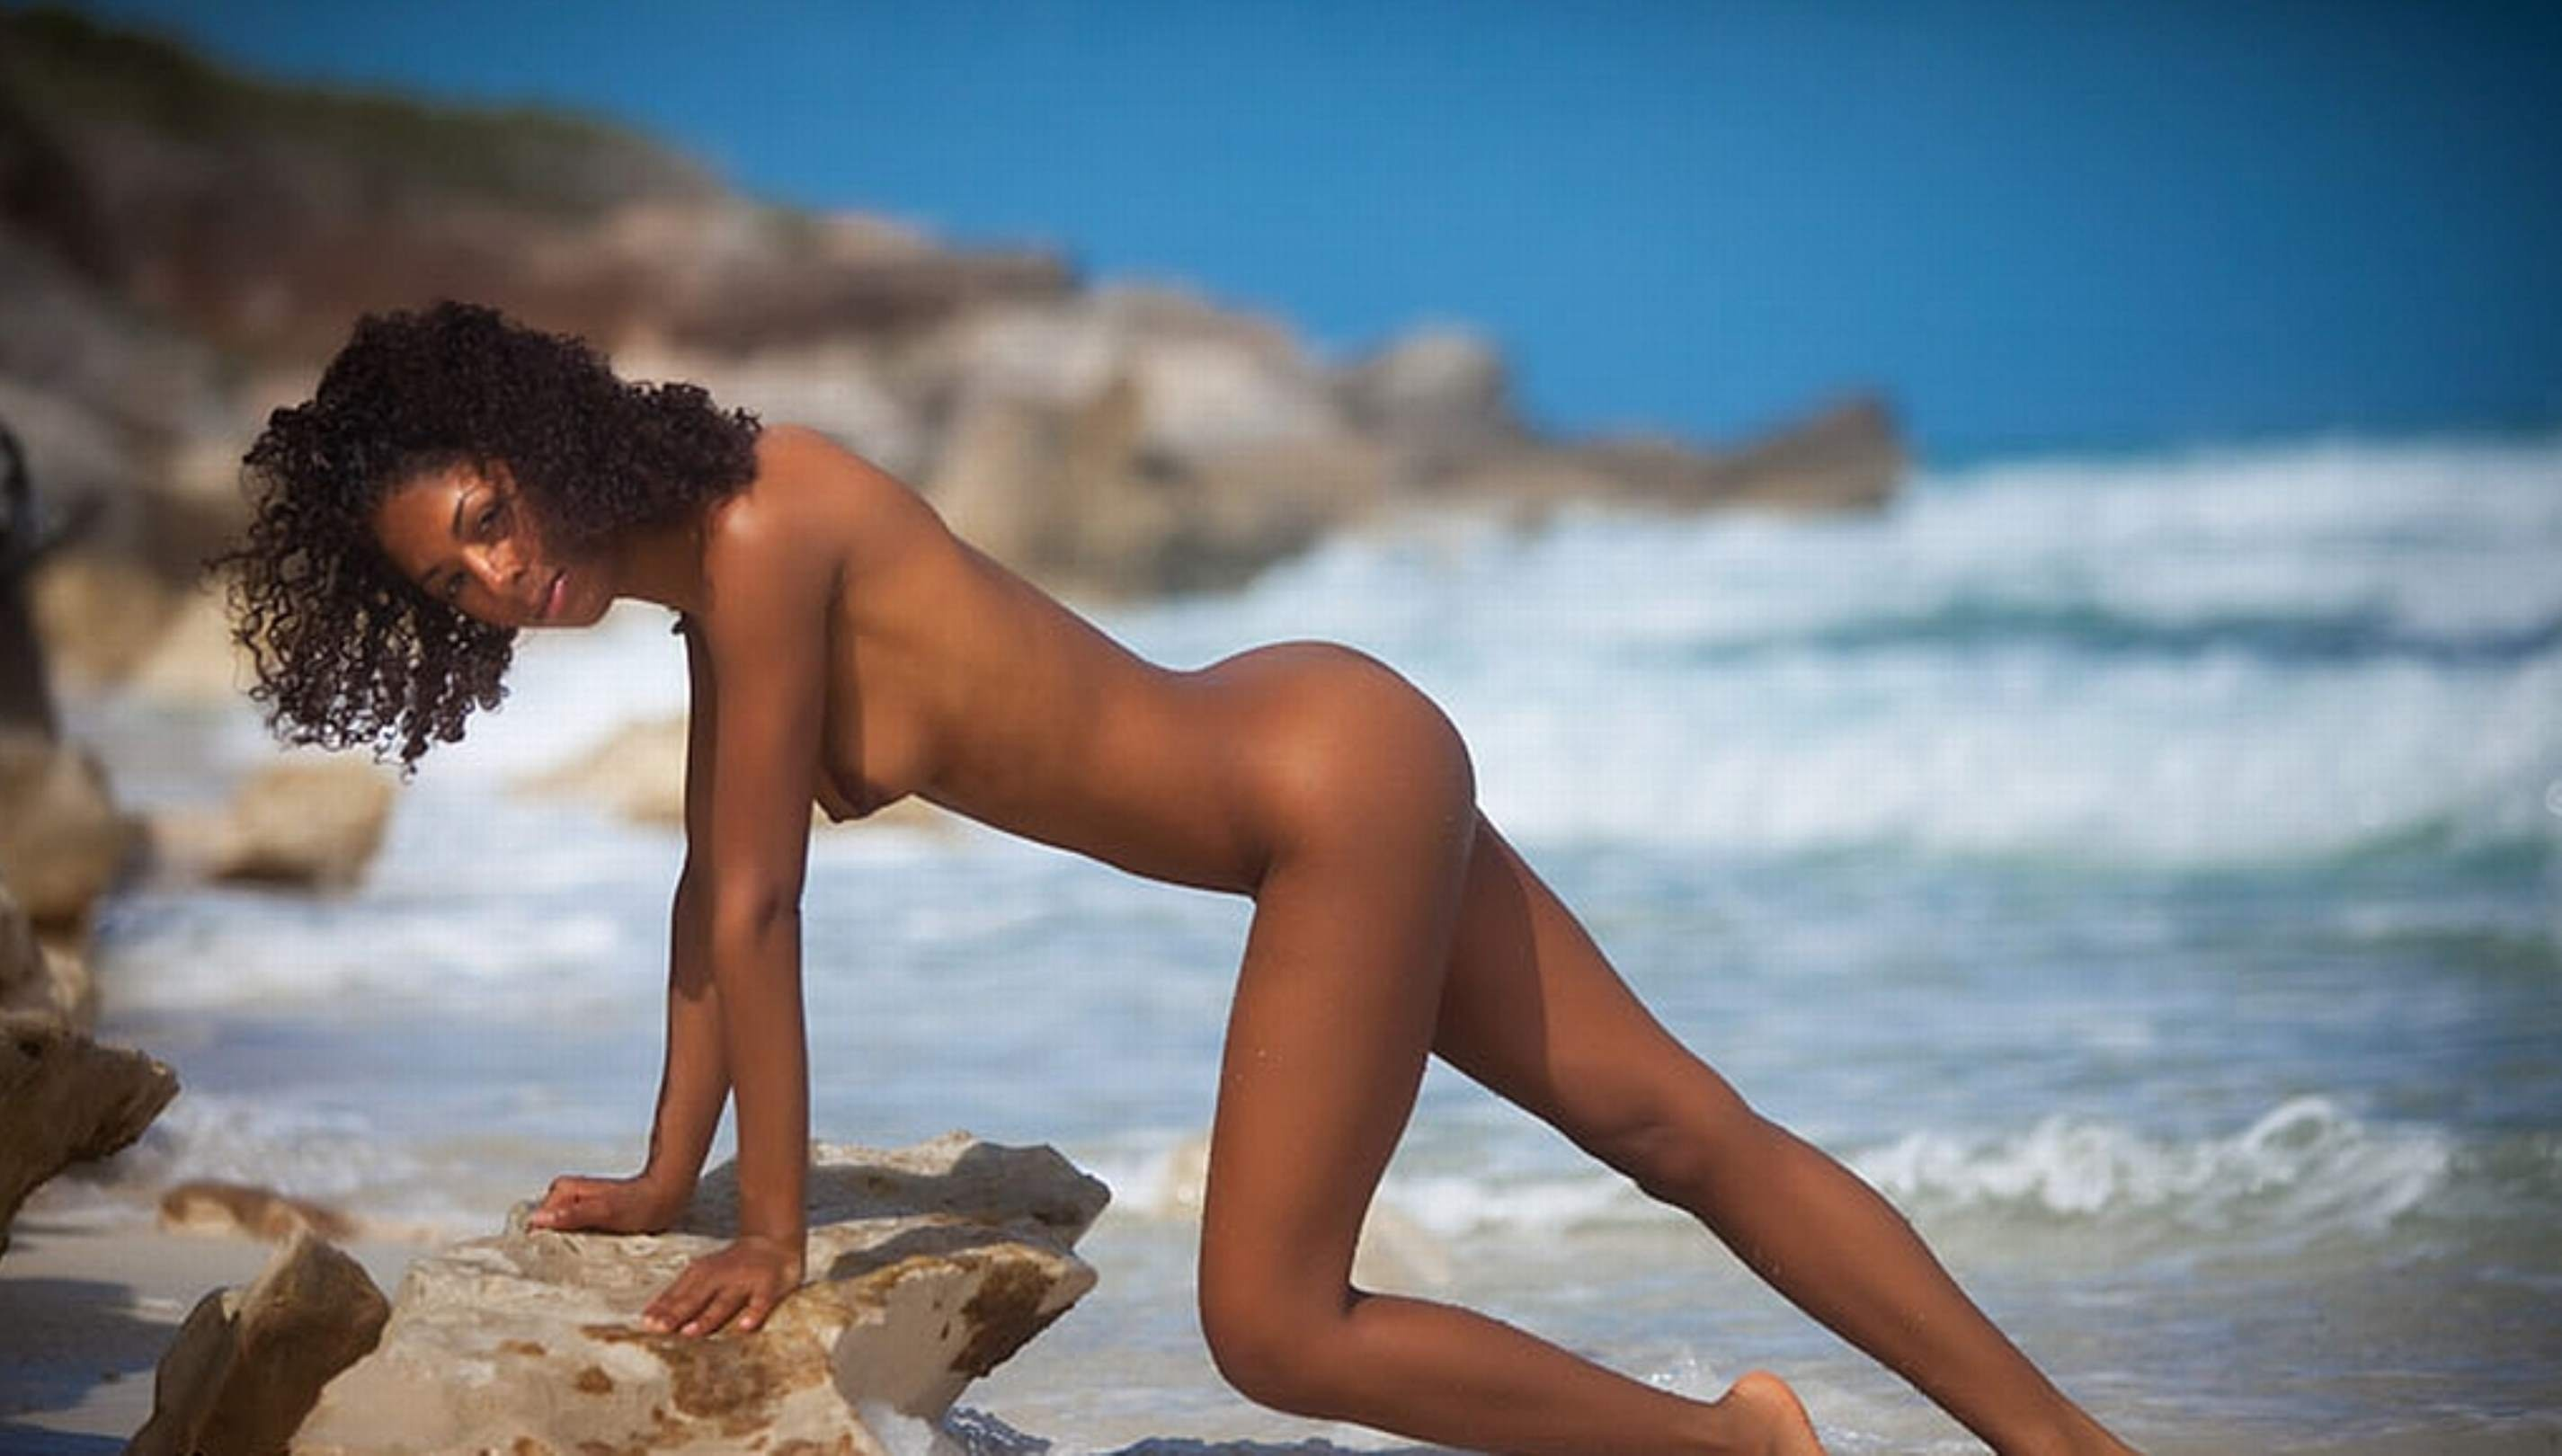 Video of nude caribbean girl johansson